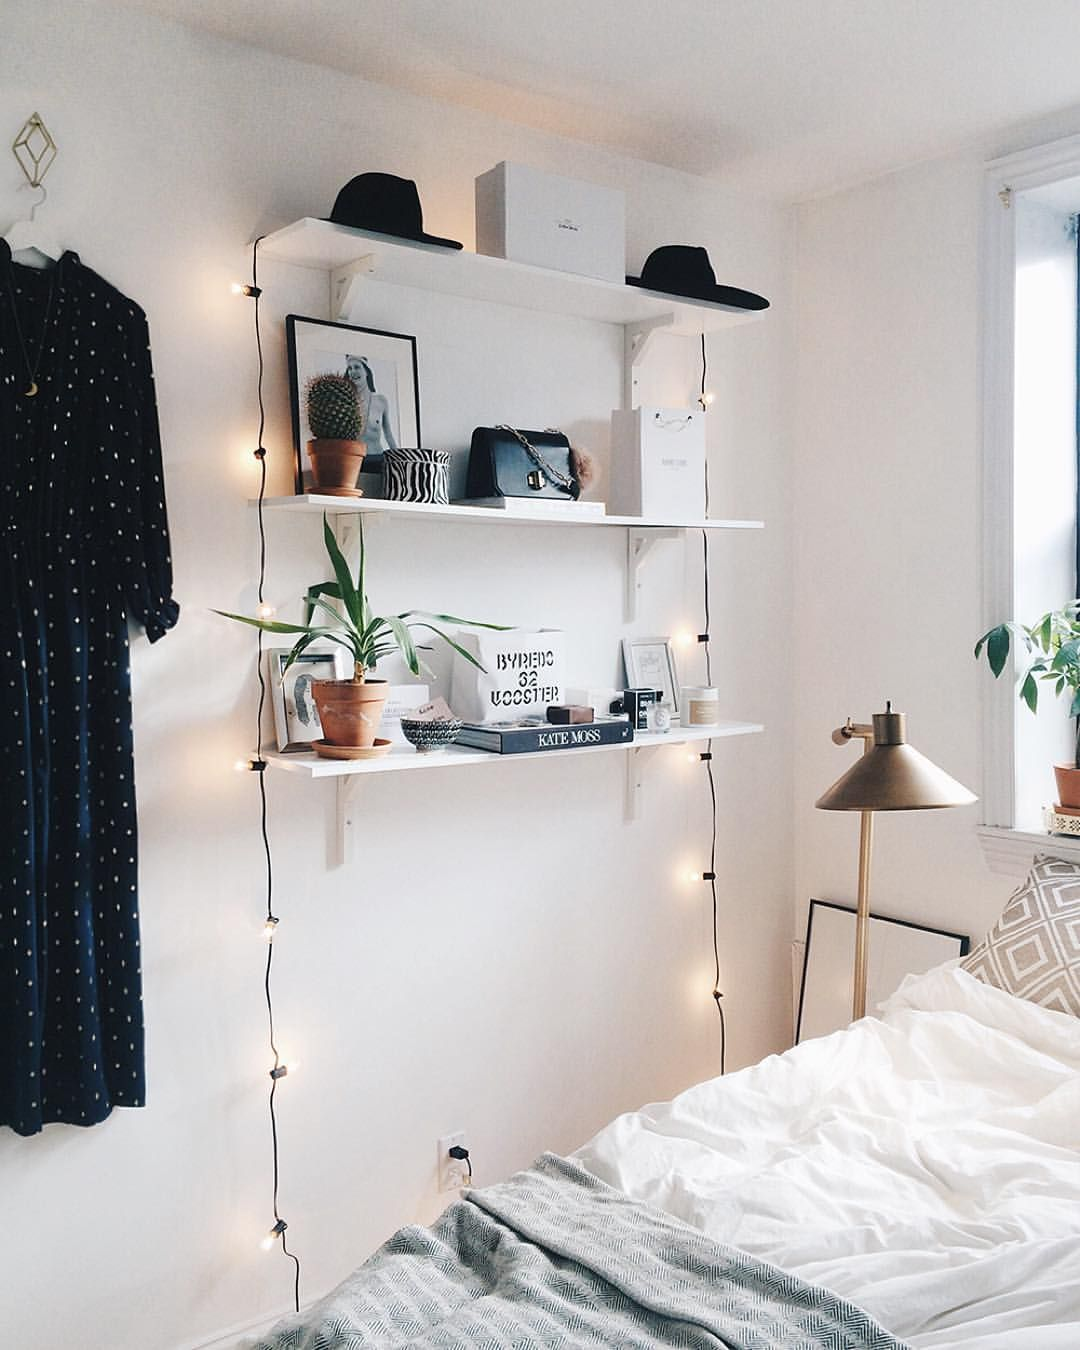 Bedrooms For Teenagers With Its Dreamy Aesthetic And Fairy